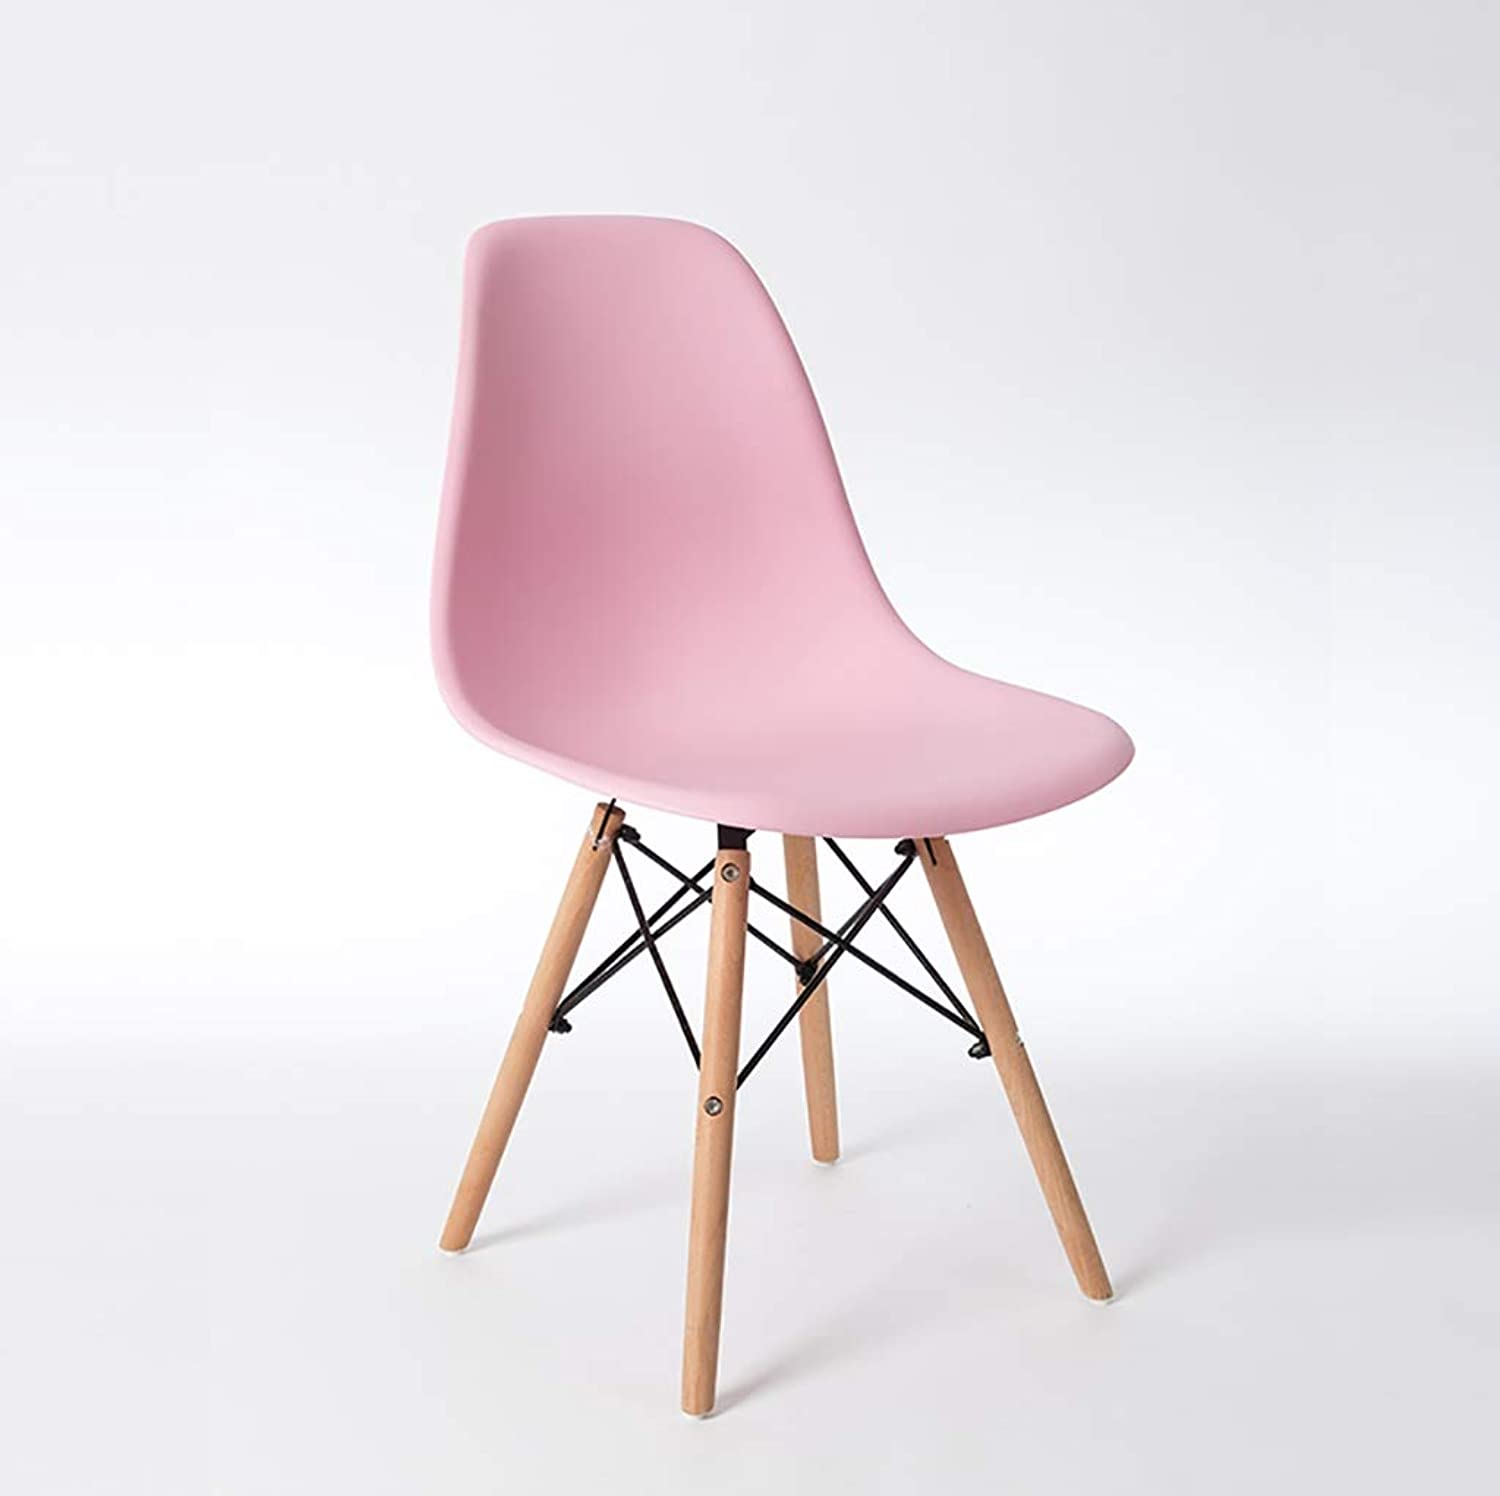 Desk Chair Fashion Plastic Sitting Surface Backrest Meeting Room Reception Chair Restaurant Bar Minimalist Chairs Living Room, Study, Computer Chair (5 colors are Optional) Size  38.5  46  80cm